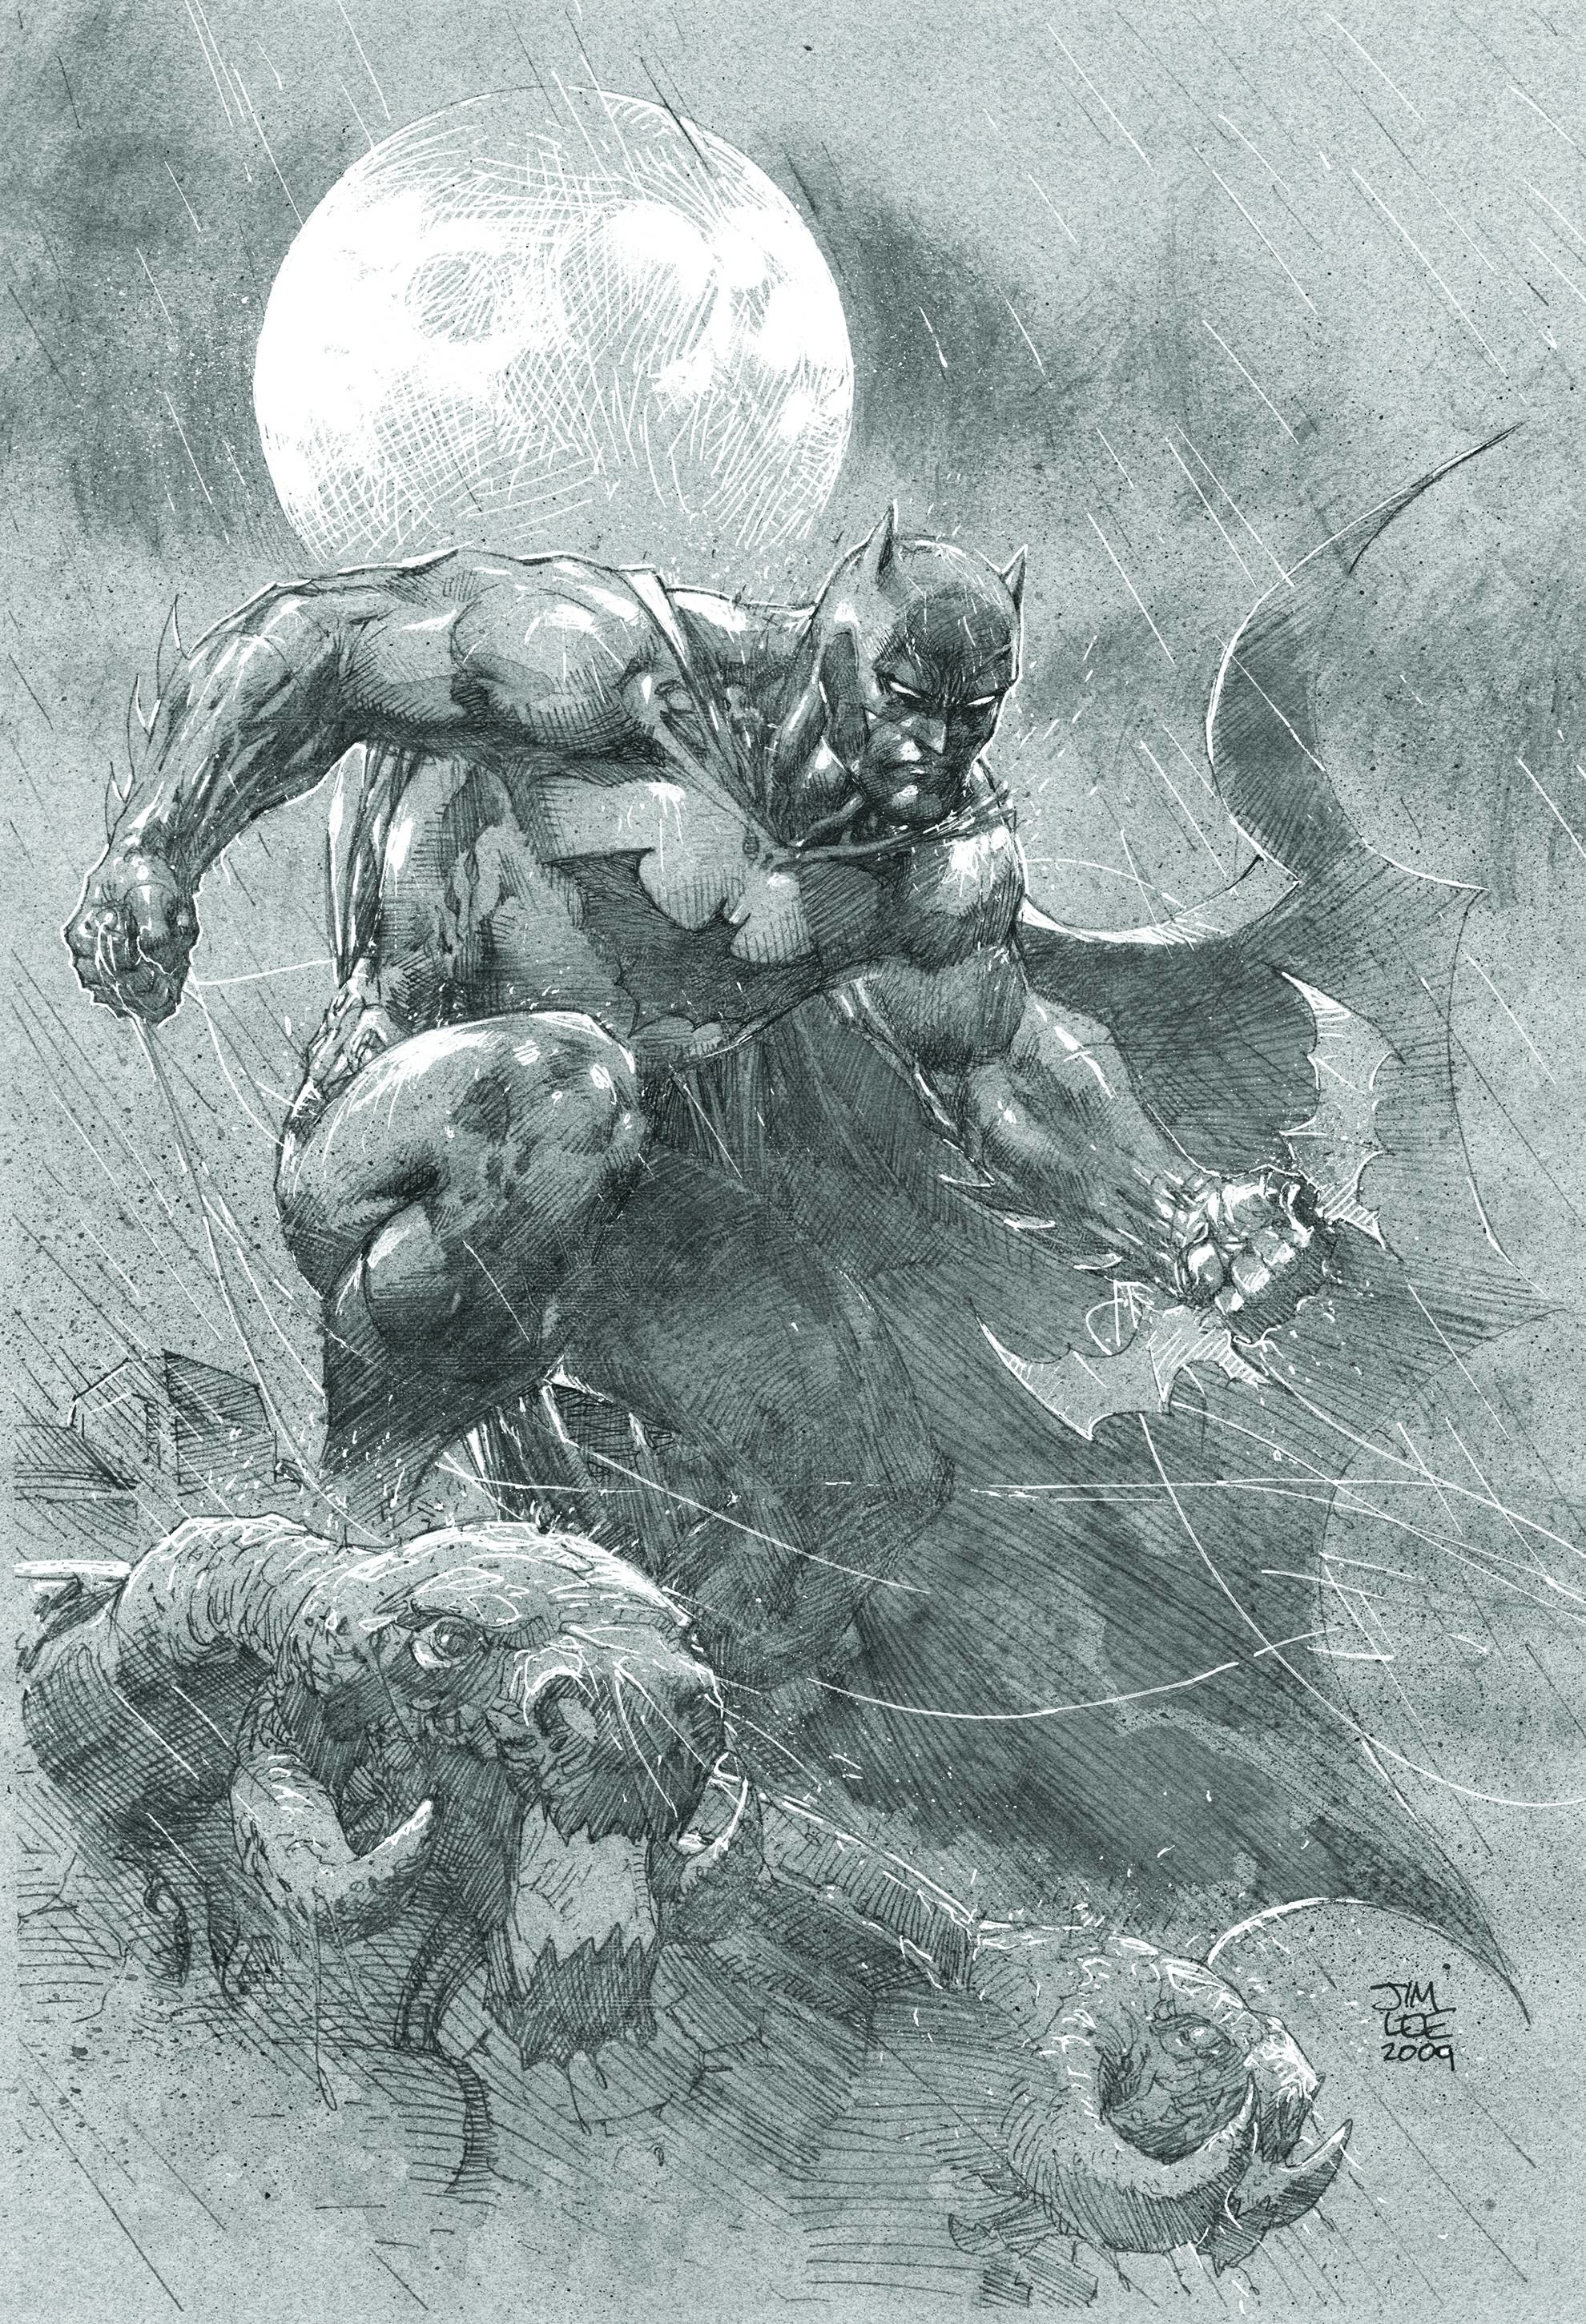 1980x2902 El arte de Jim Lee. Batman HushJim ...